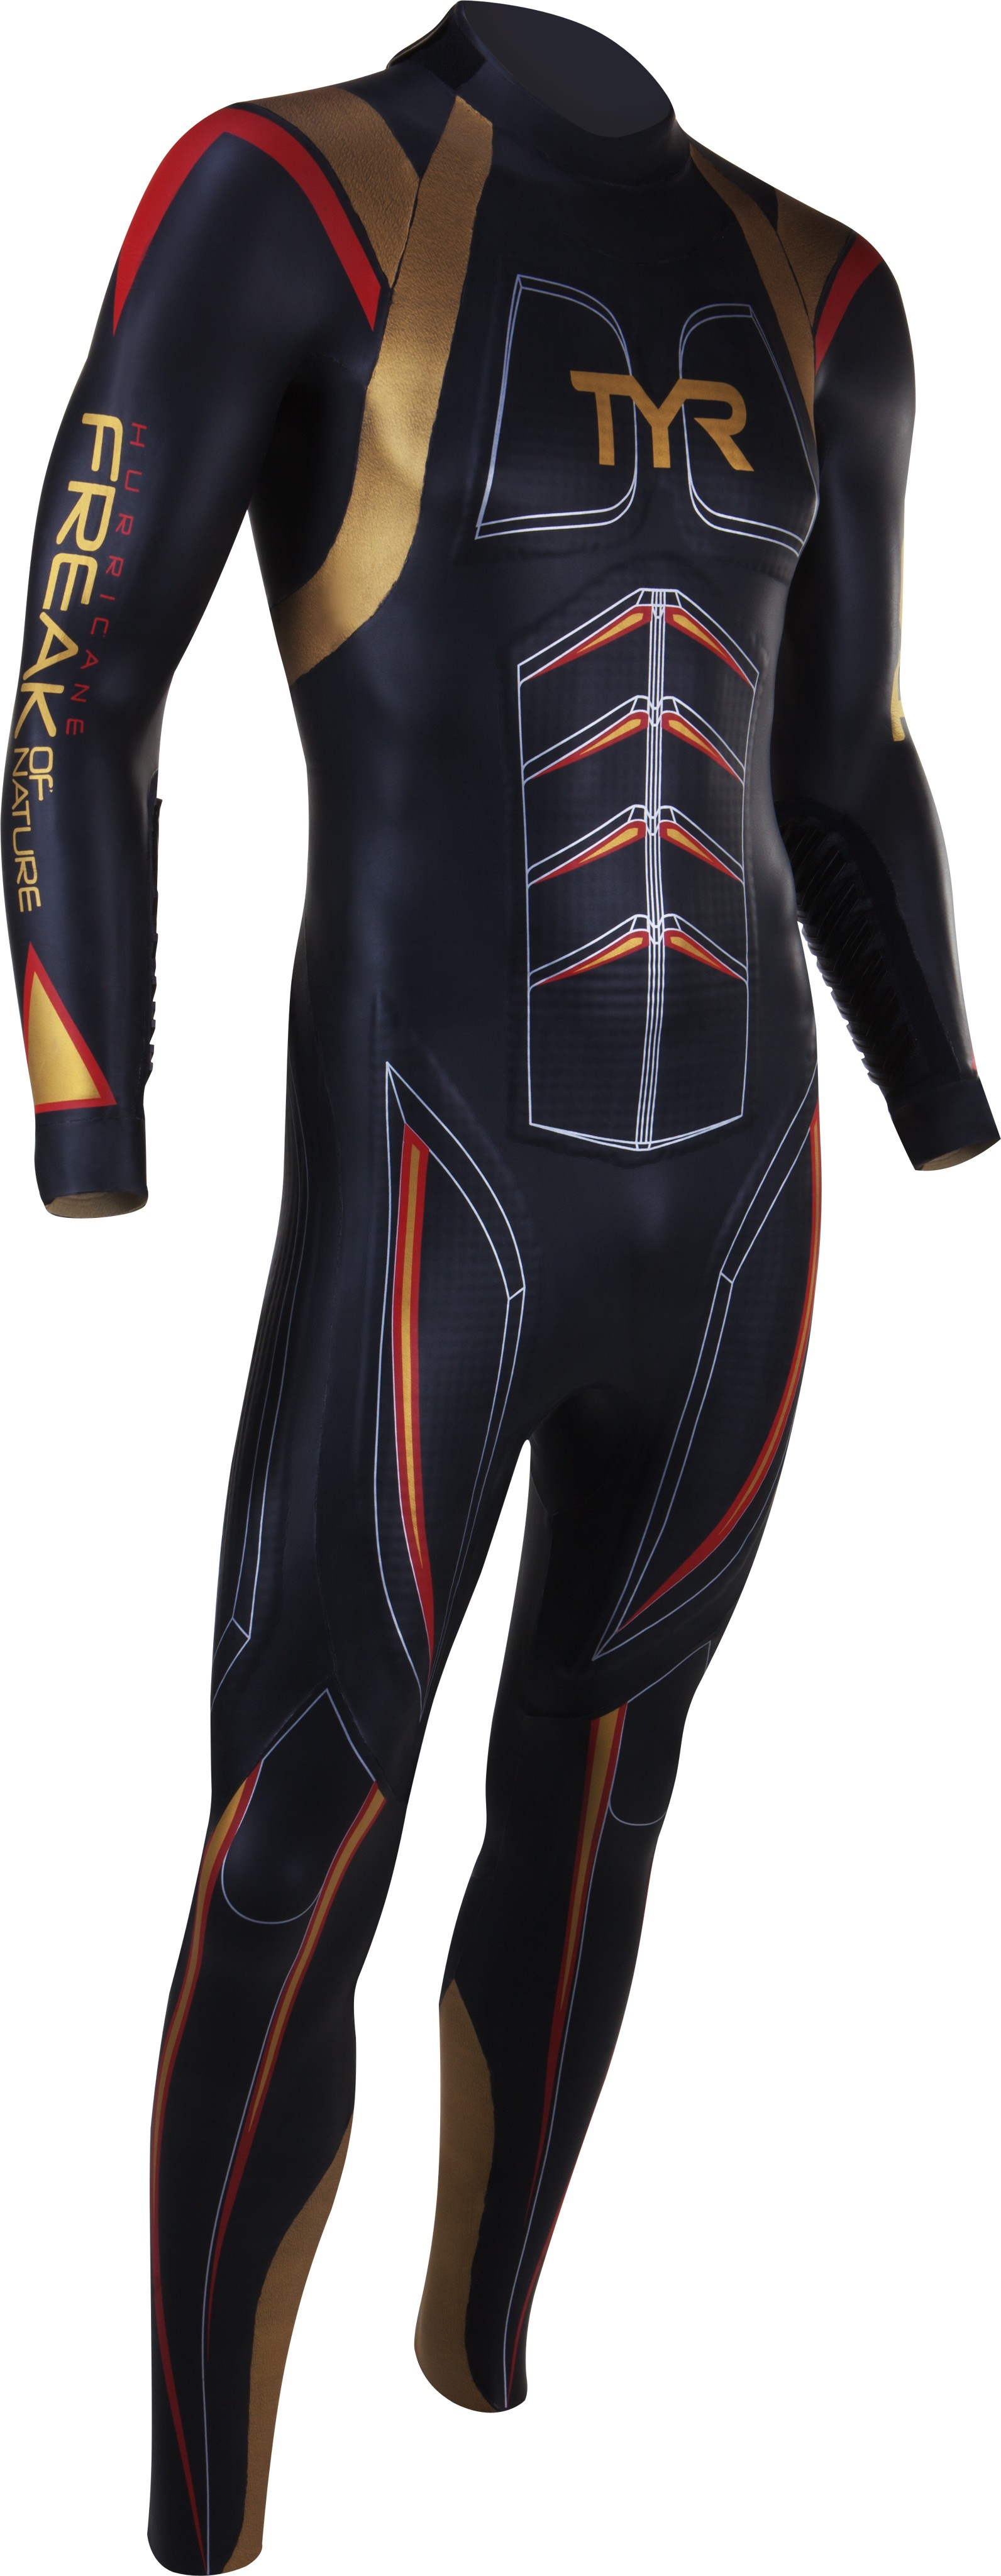 4592c47ca26ed Men s Hurricane Freak of Nature Triathlon Wetsuits ...